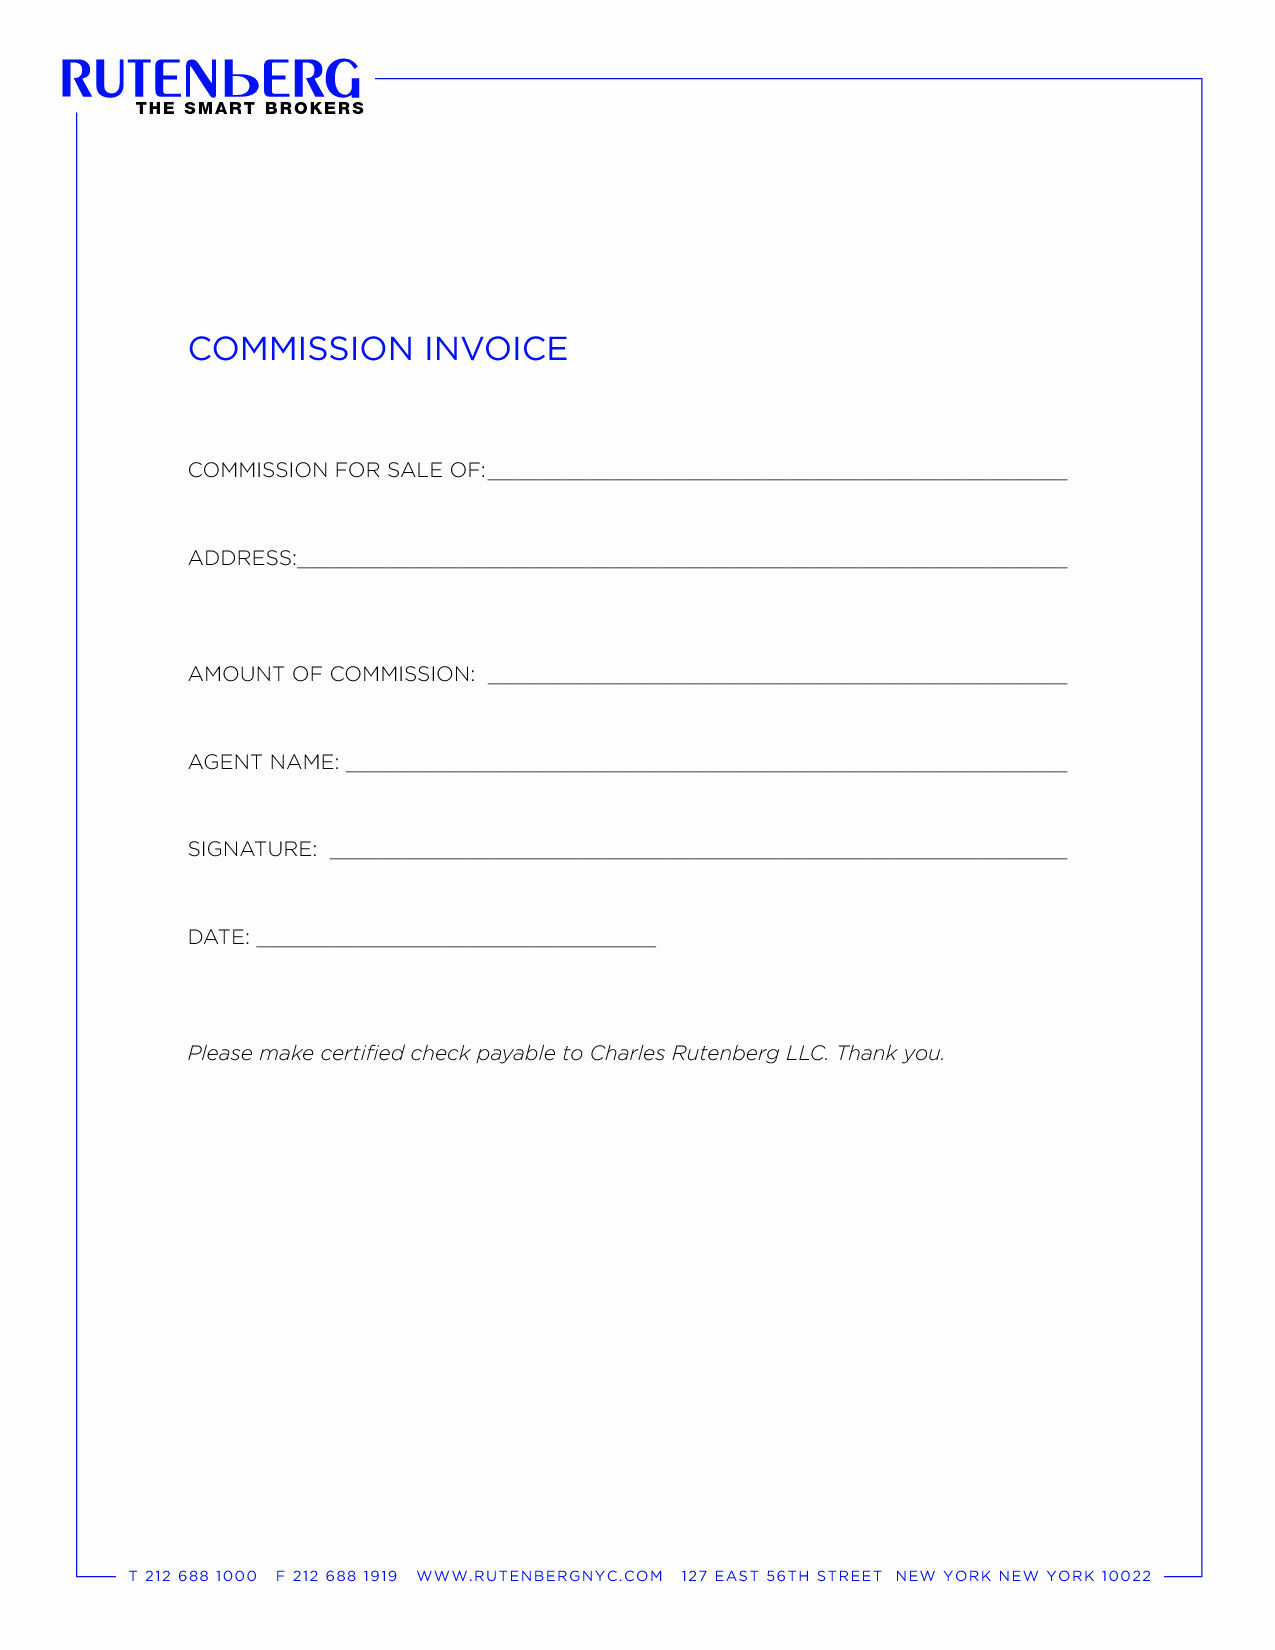 10 Best Of Sales Mission Invoice Sample Real Estate Mission Invoice Template